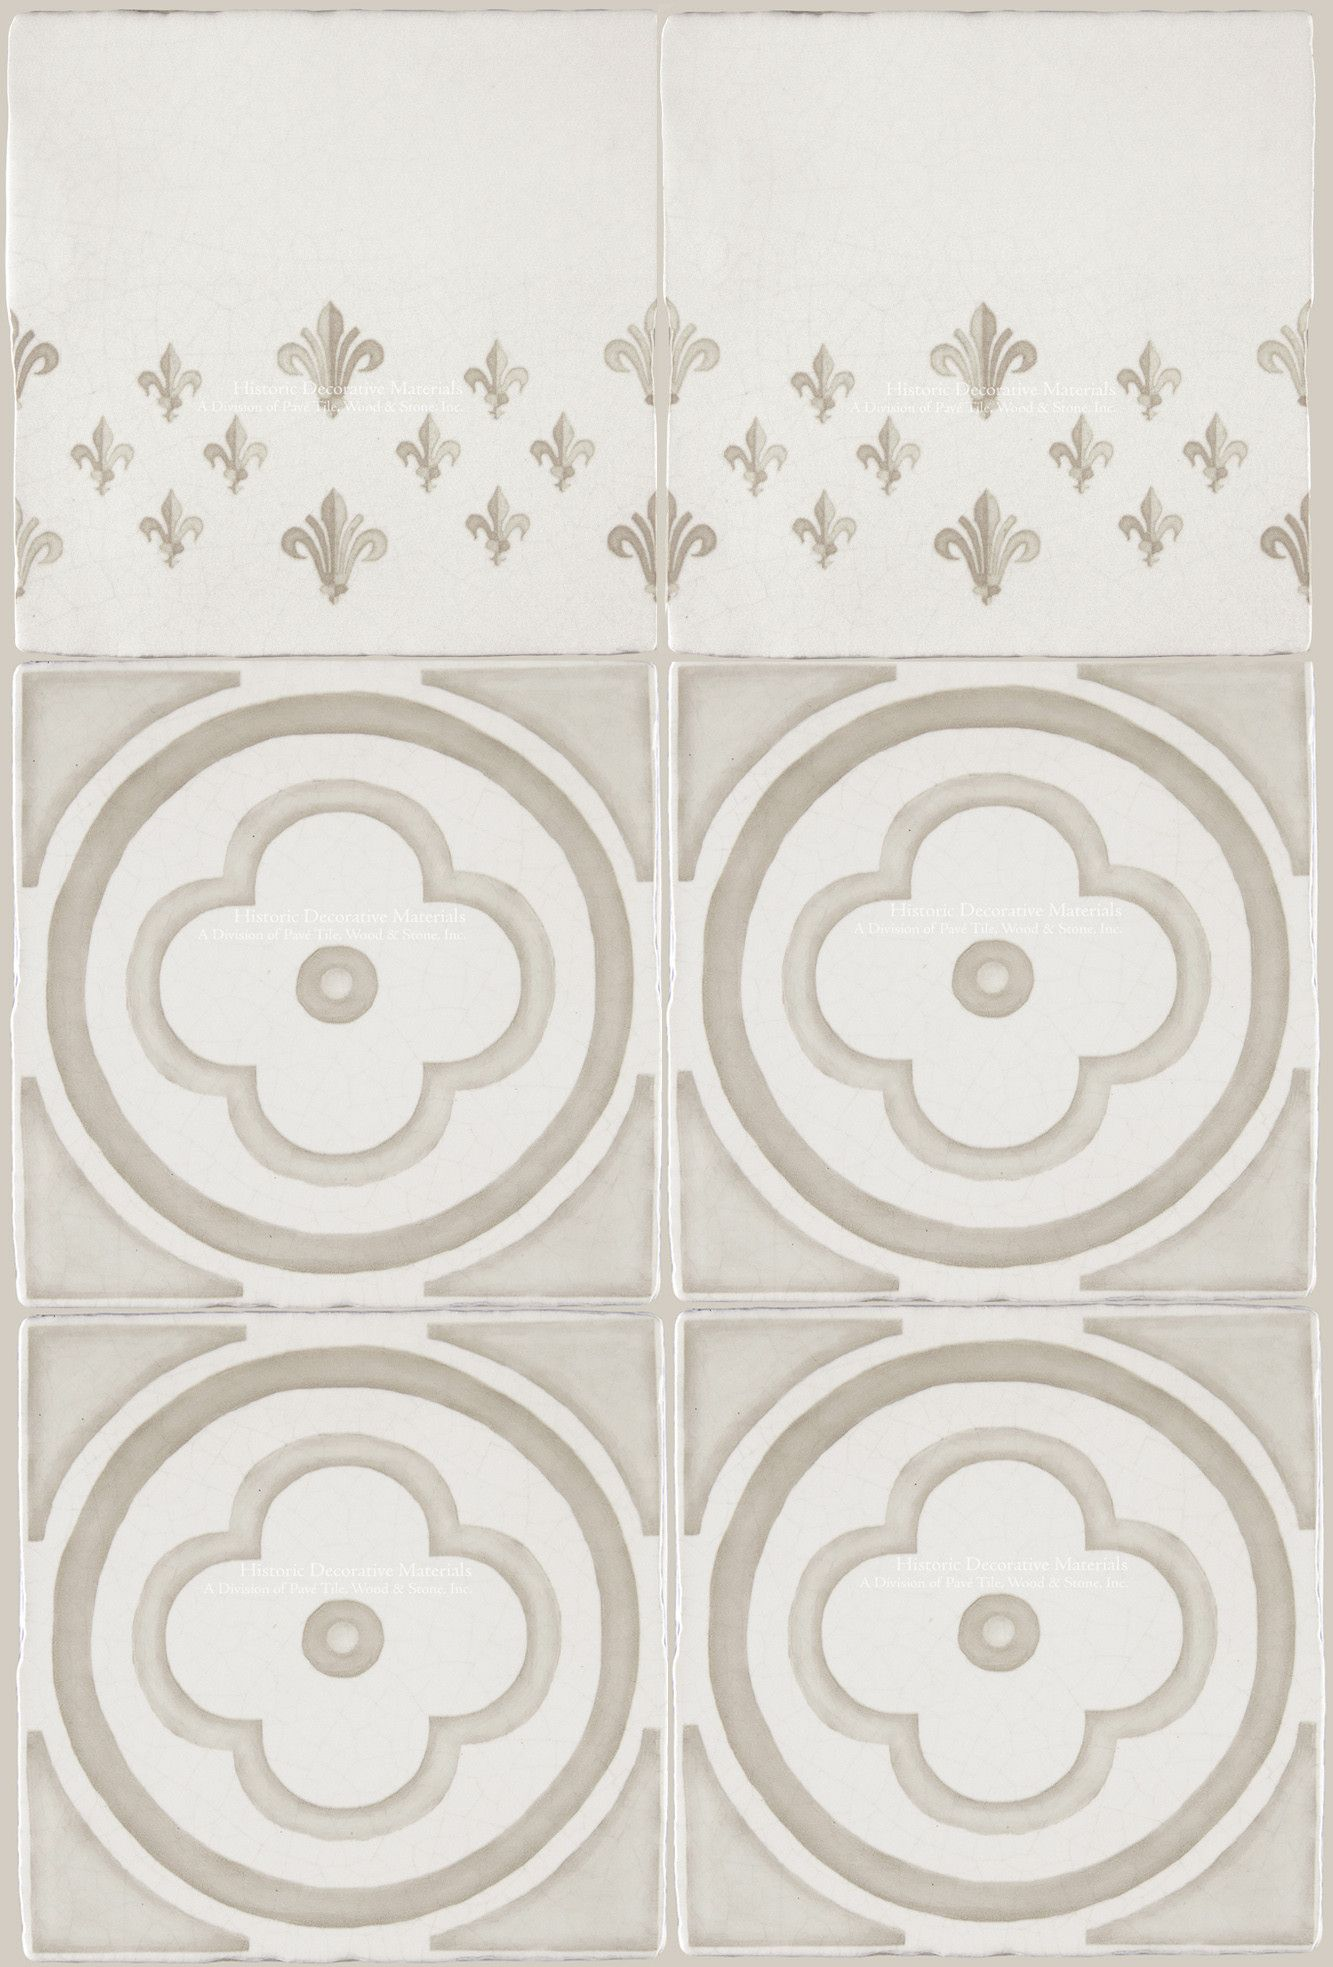 Decorative Tiles For Wall French Encaustic Decorative Wall Tile For Kitchens Baths And